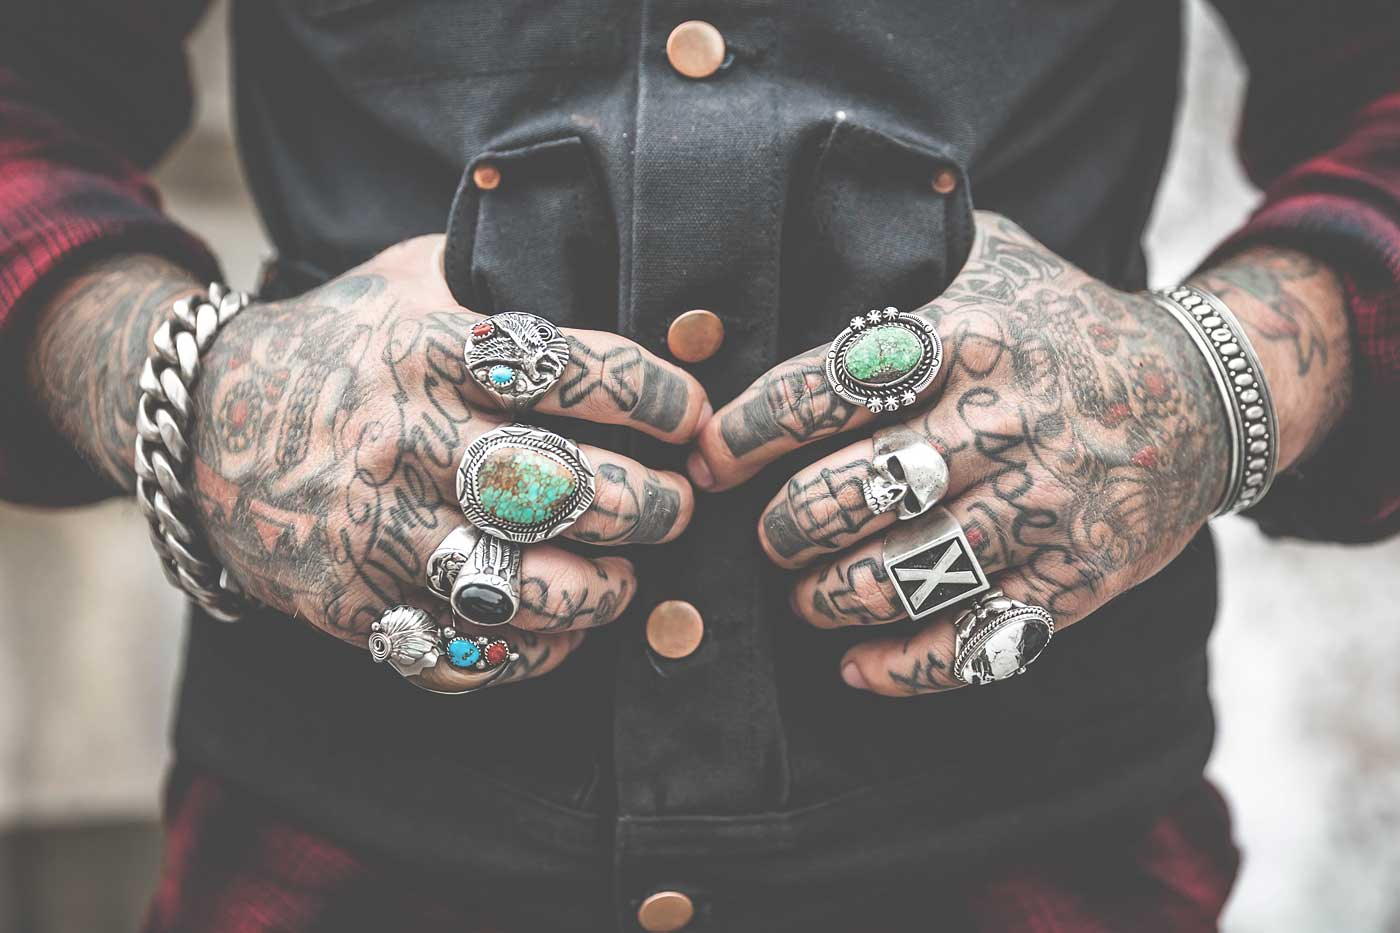 cool tattoo hands